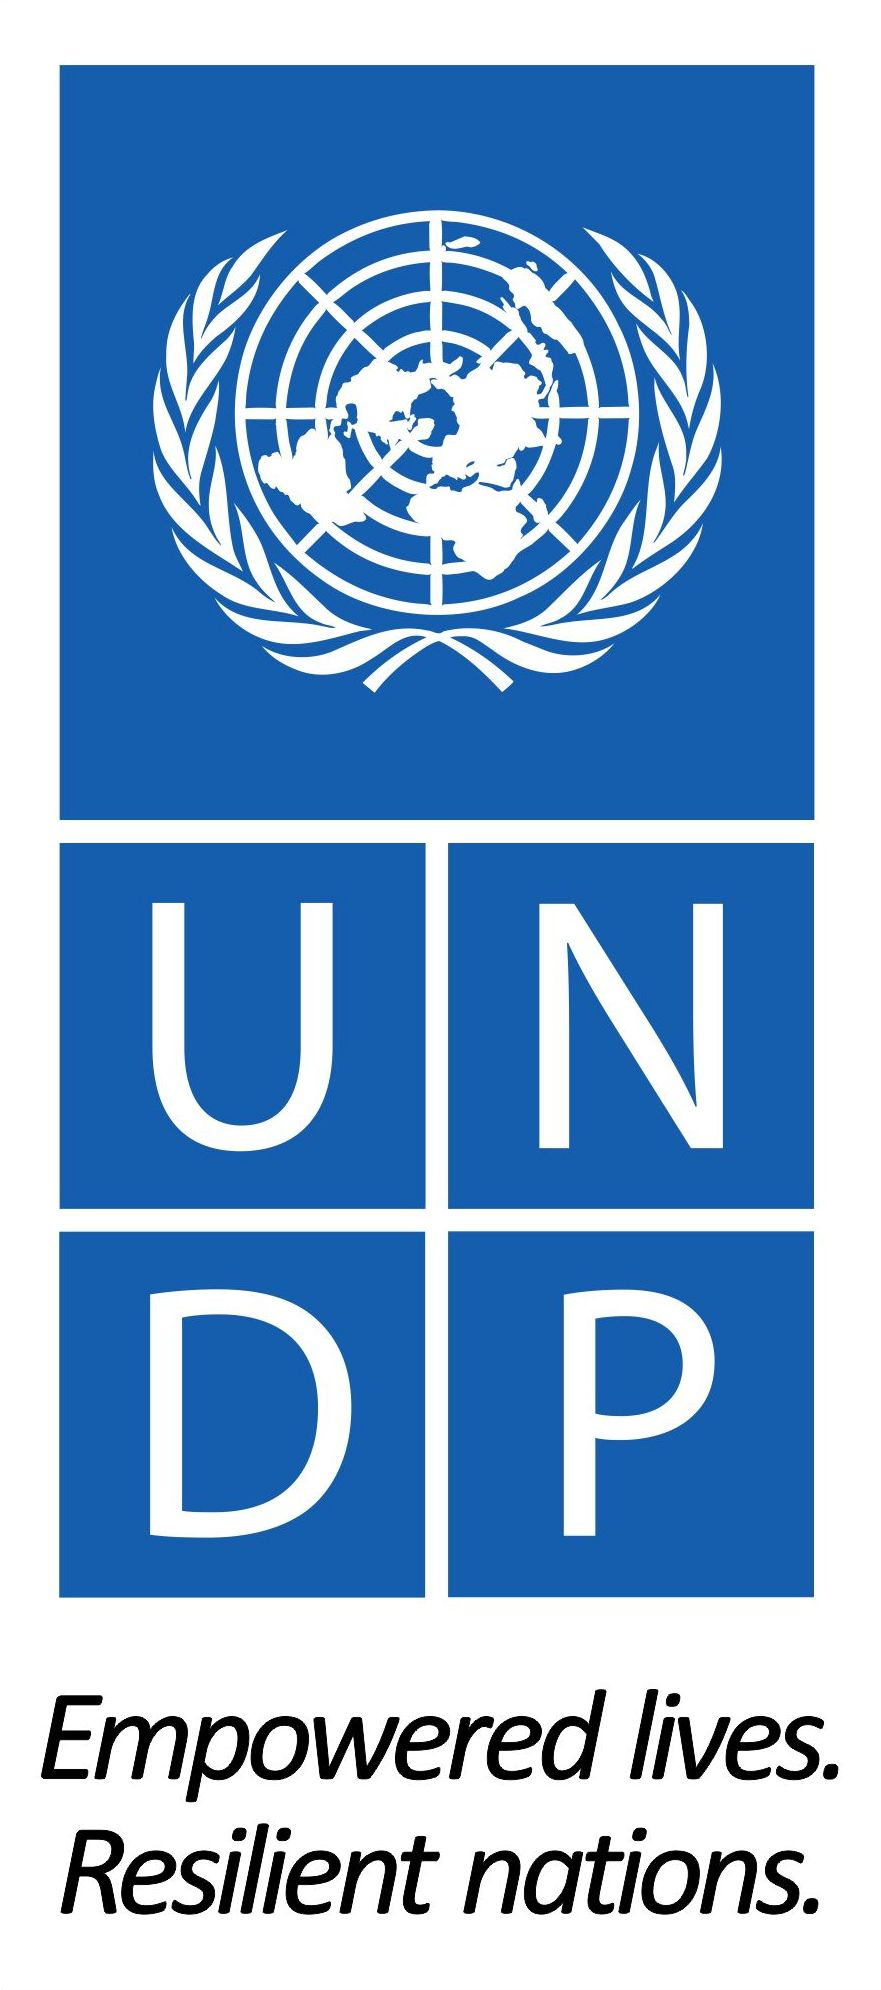 UNDP-logo-png.png